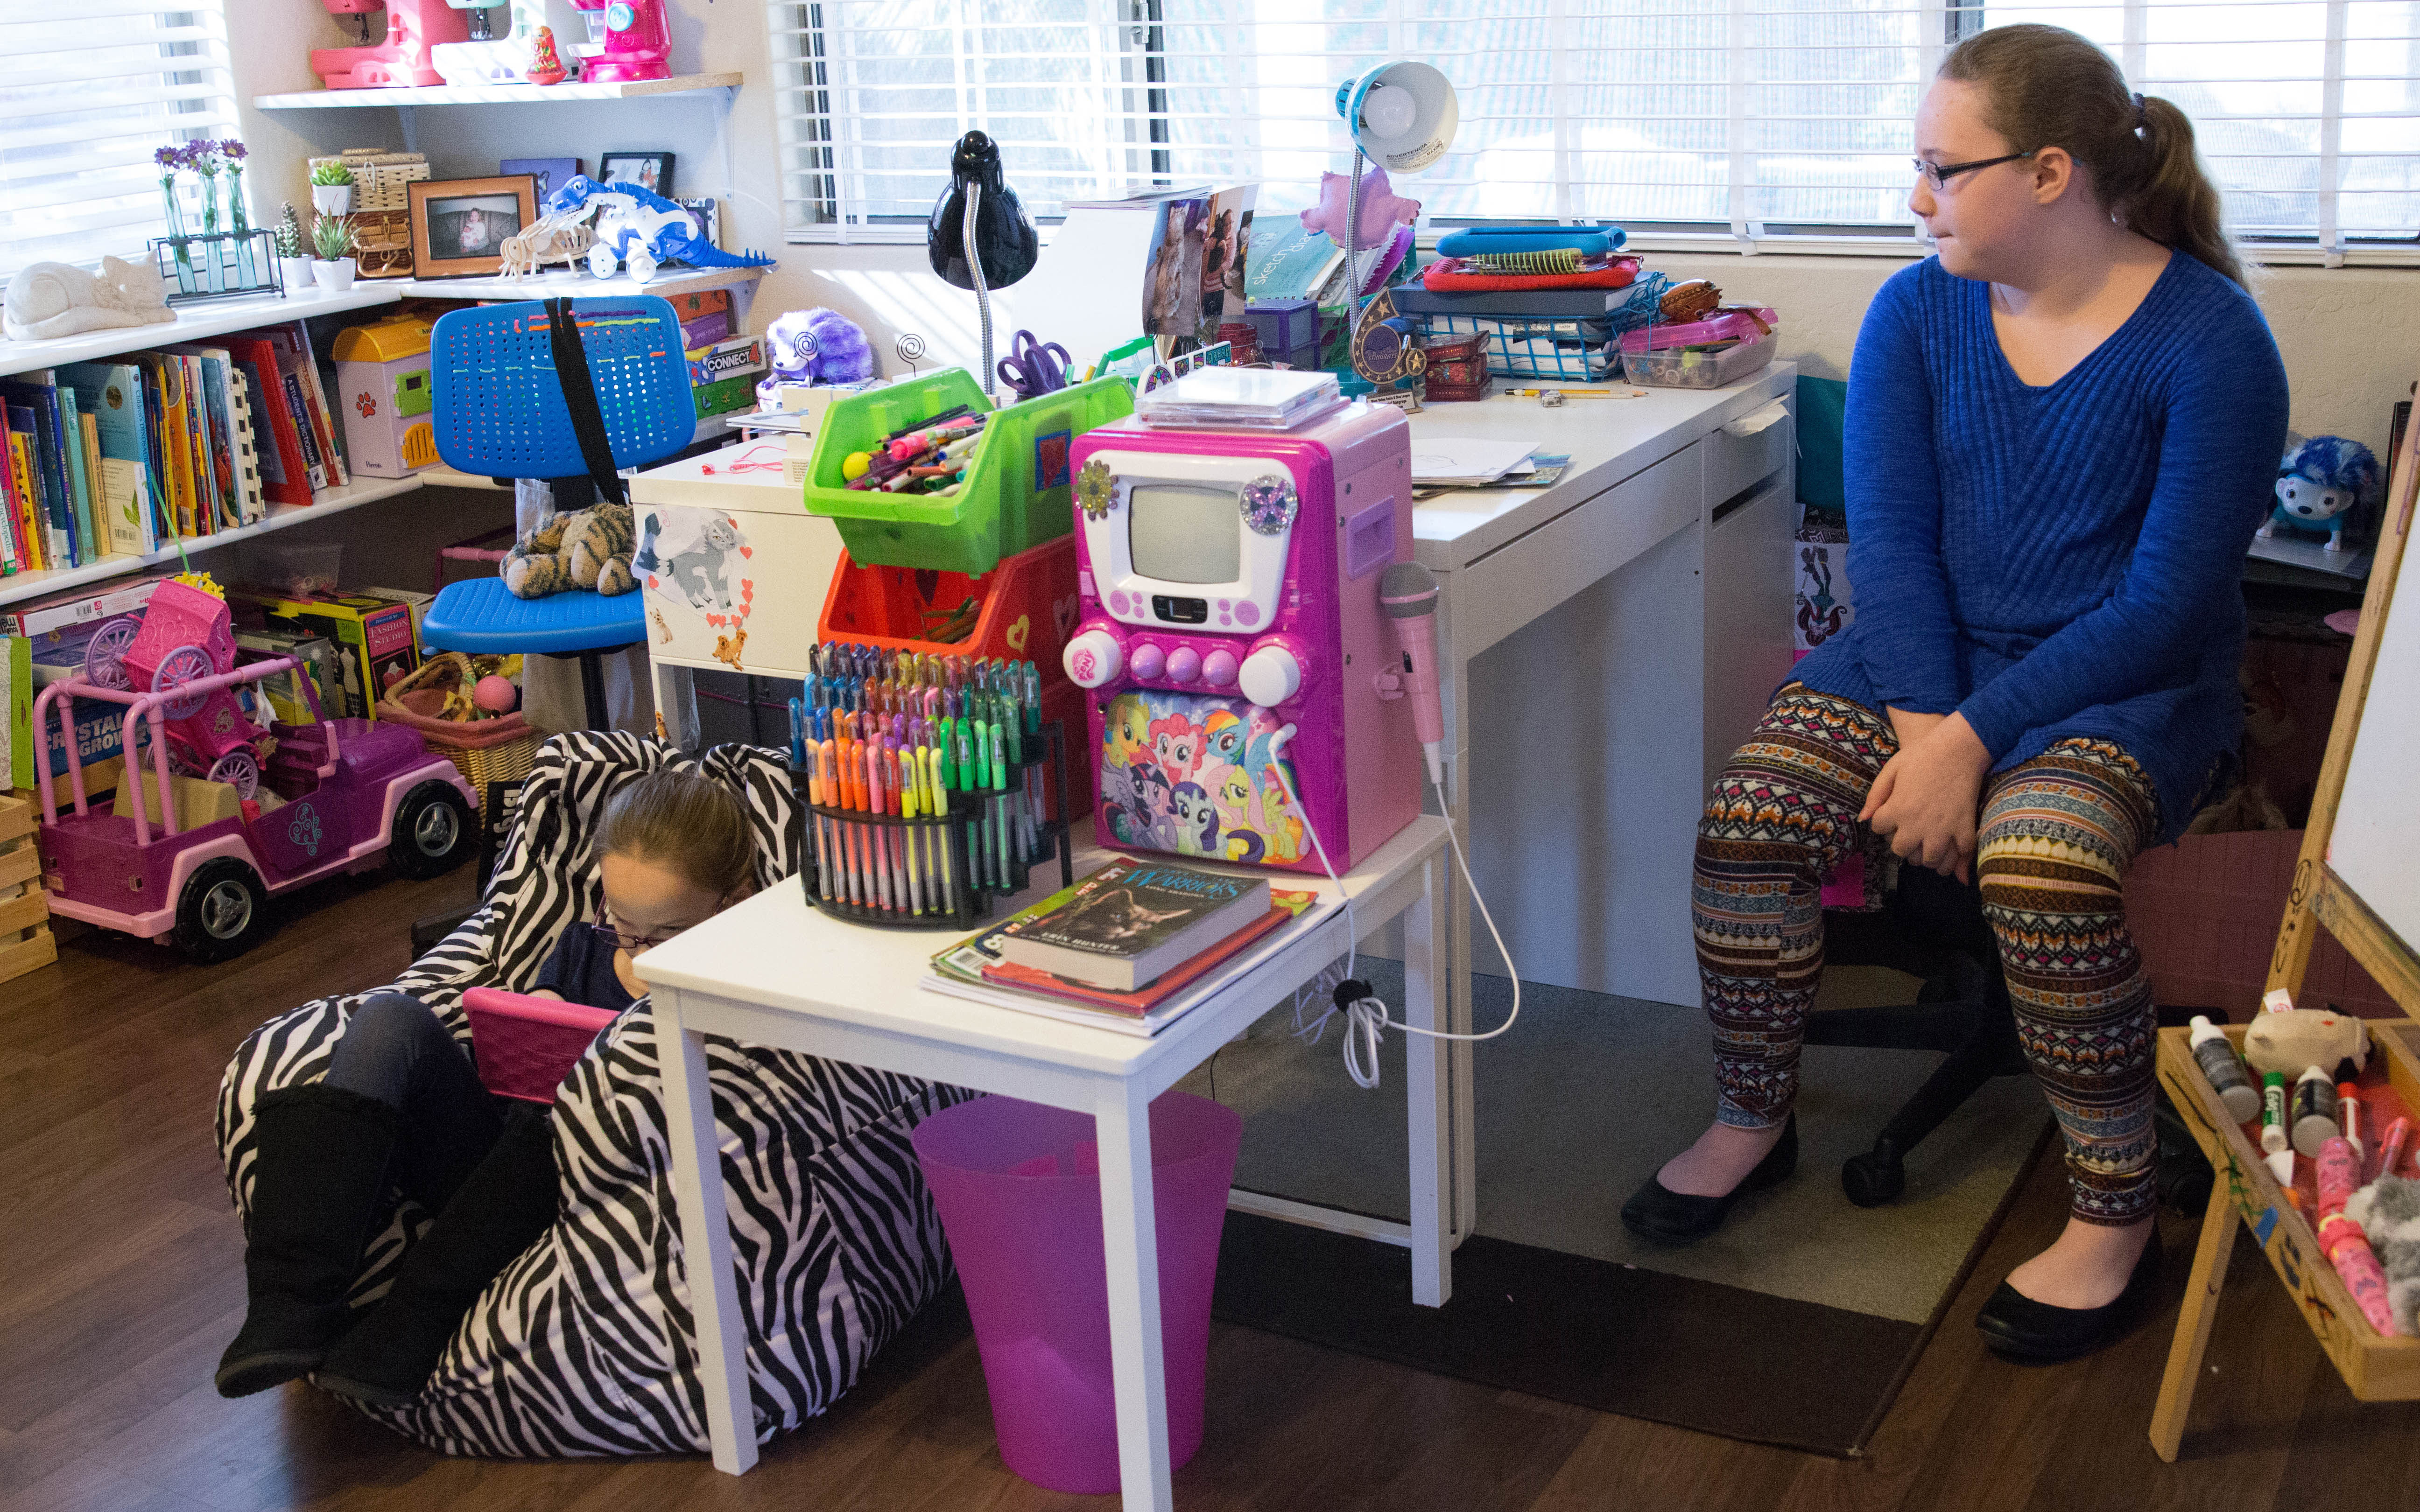 Cora Childress (left) and Caitlin Childress use Buzzies. Their mother said they both have anxiety.(Photo by Megan Bridgeman/ Cronkite News)